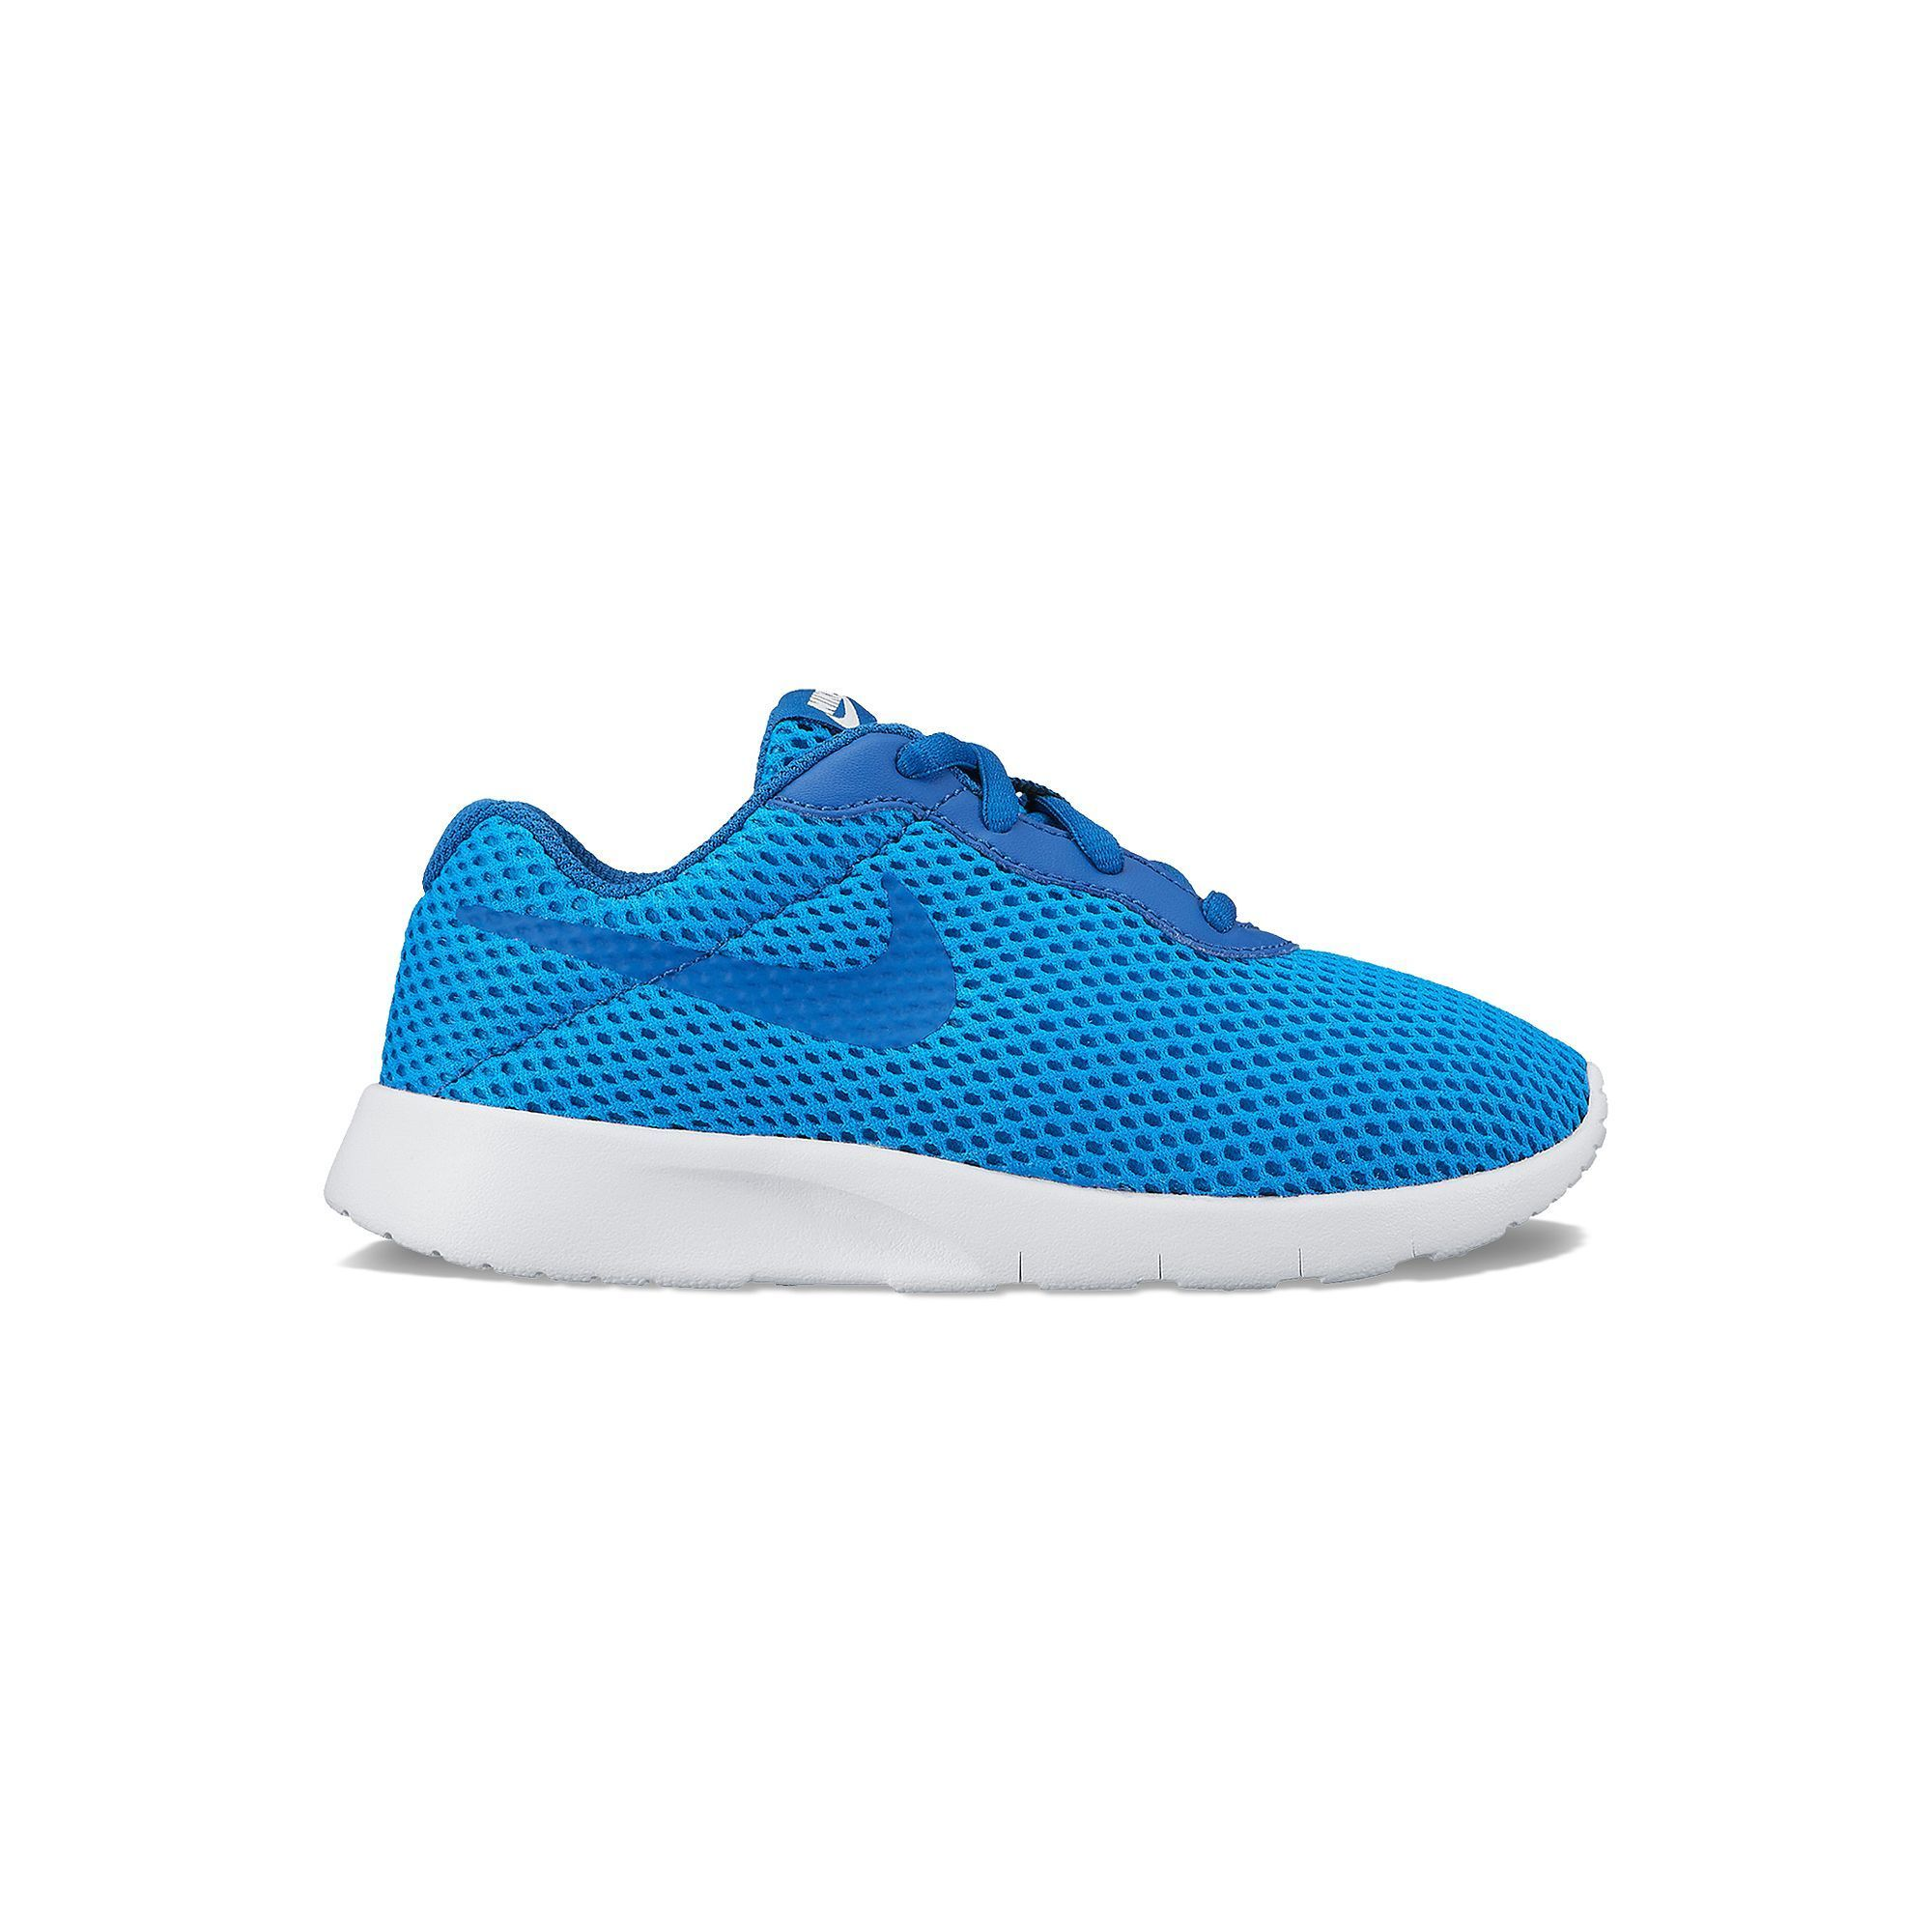 finest selection cef34 7b728 These Nike Tanjun Breathe shoes deliver running-inspired comfort with  distinct modern style. A layered mesh upper provides breathable comfort, ...